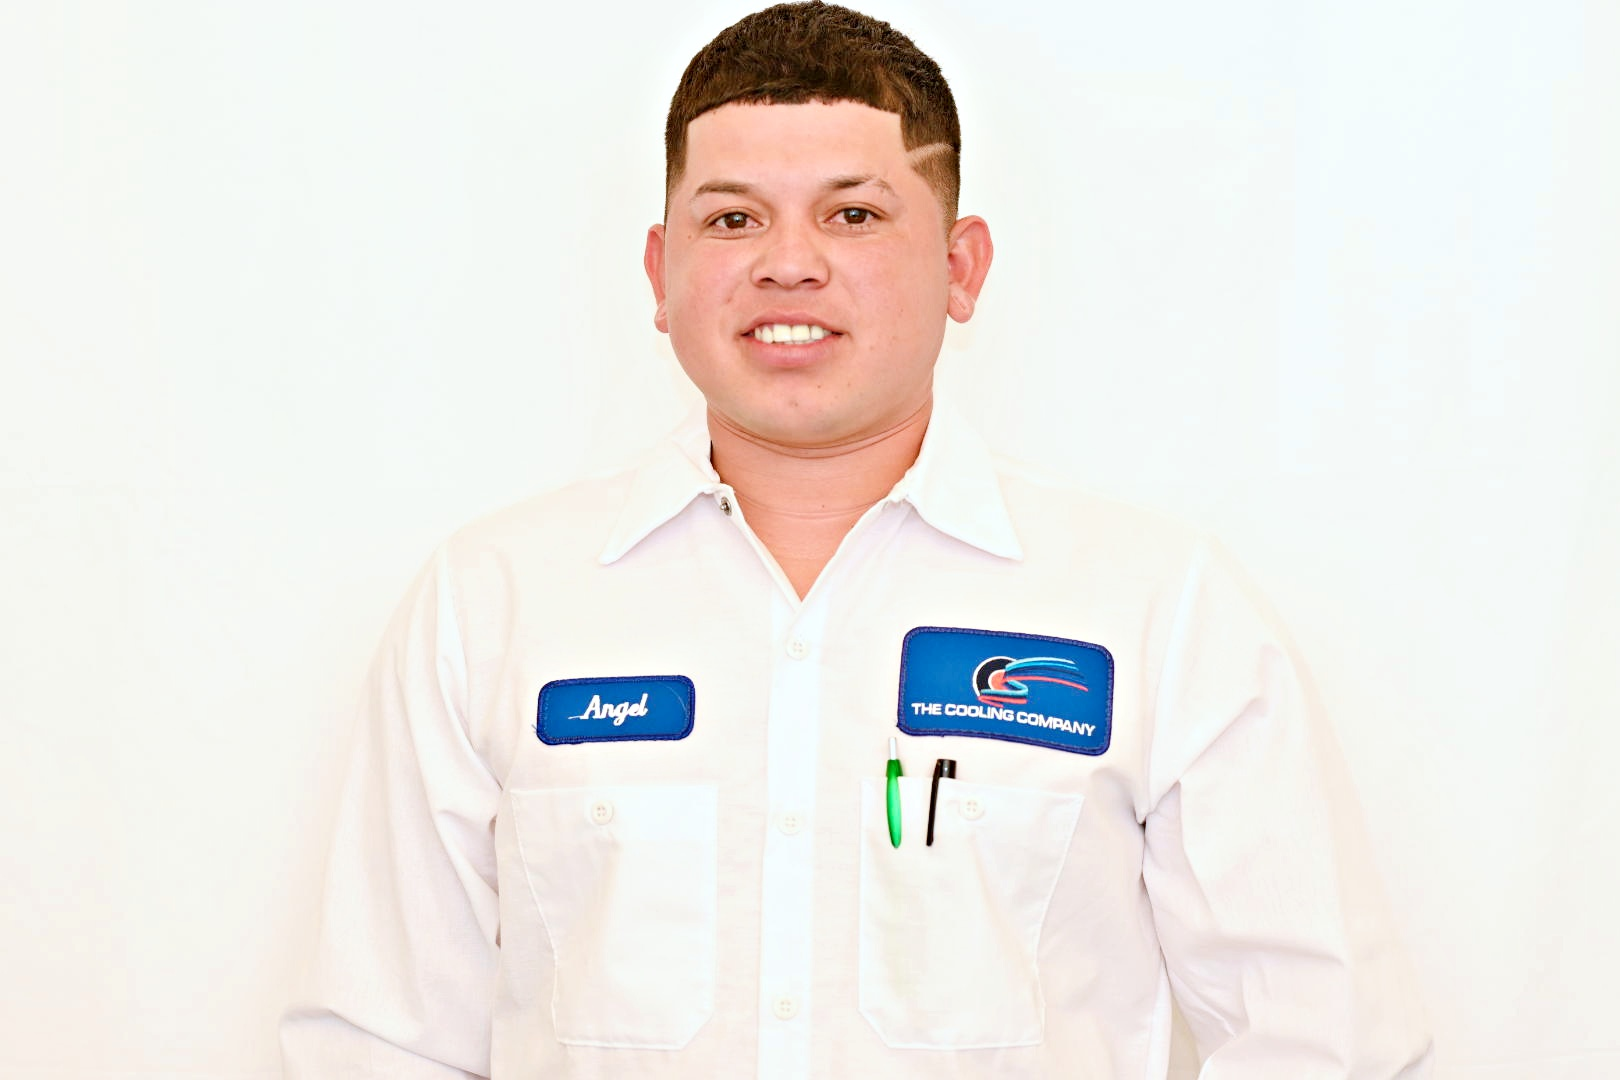 Installer Angel of Cooling Company